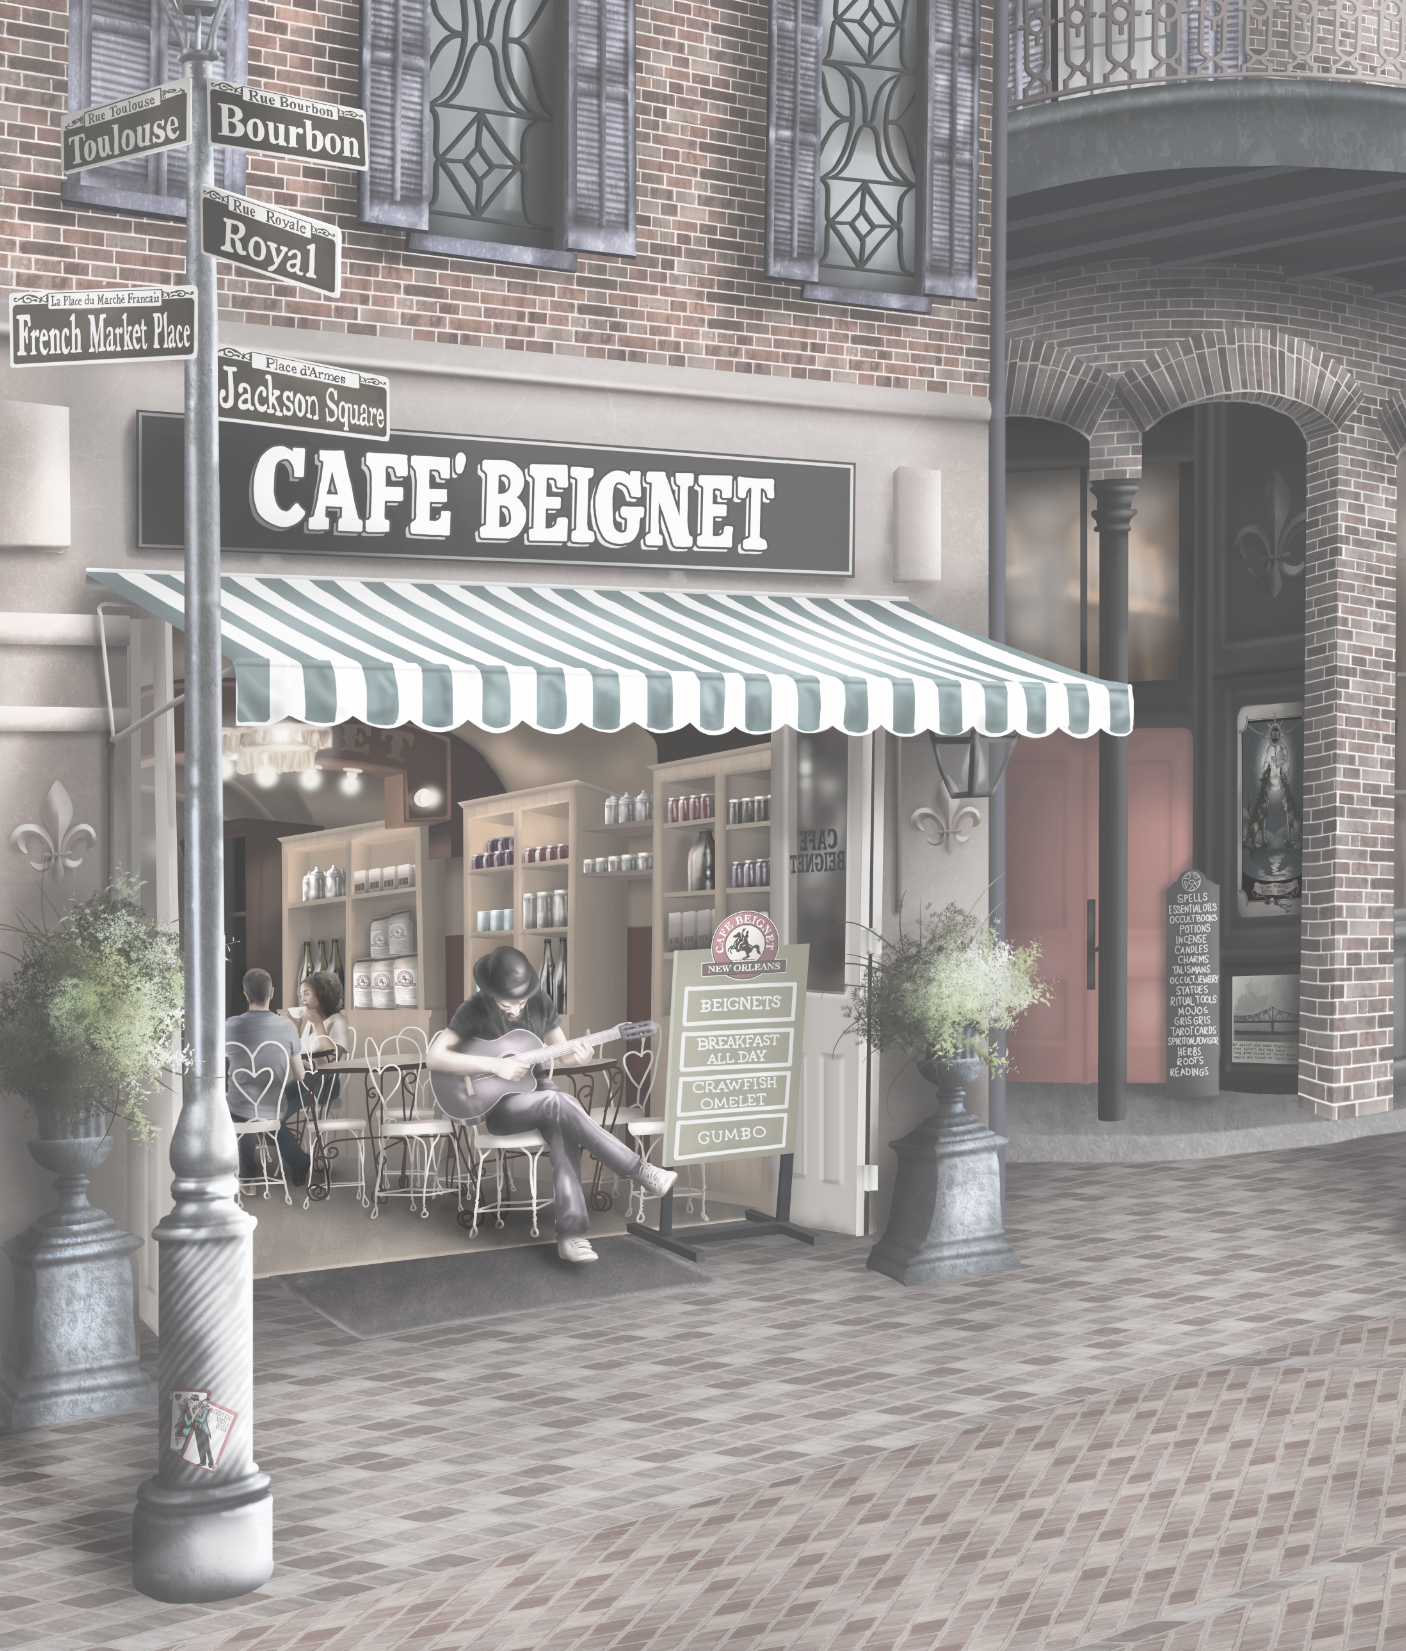 Section of the New Orleans wall mural wallpaper design. Featuring Cafe Beignet and New Orleans street sigs like Rue Bourbon, Rue Royal, Rue Toulouse, Jackson Square, French Market Place, voodoo and much more!